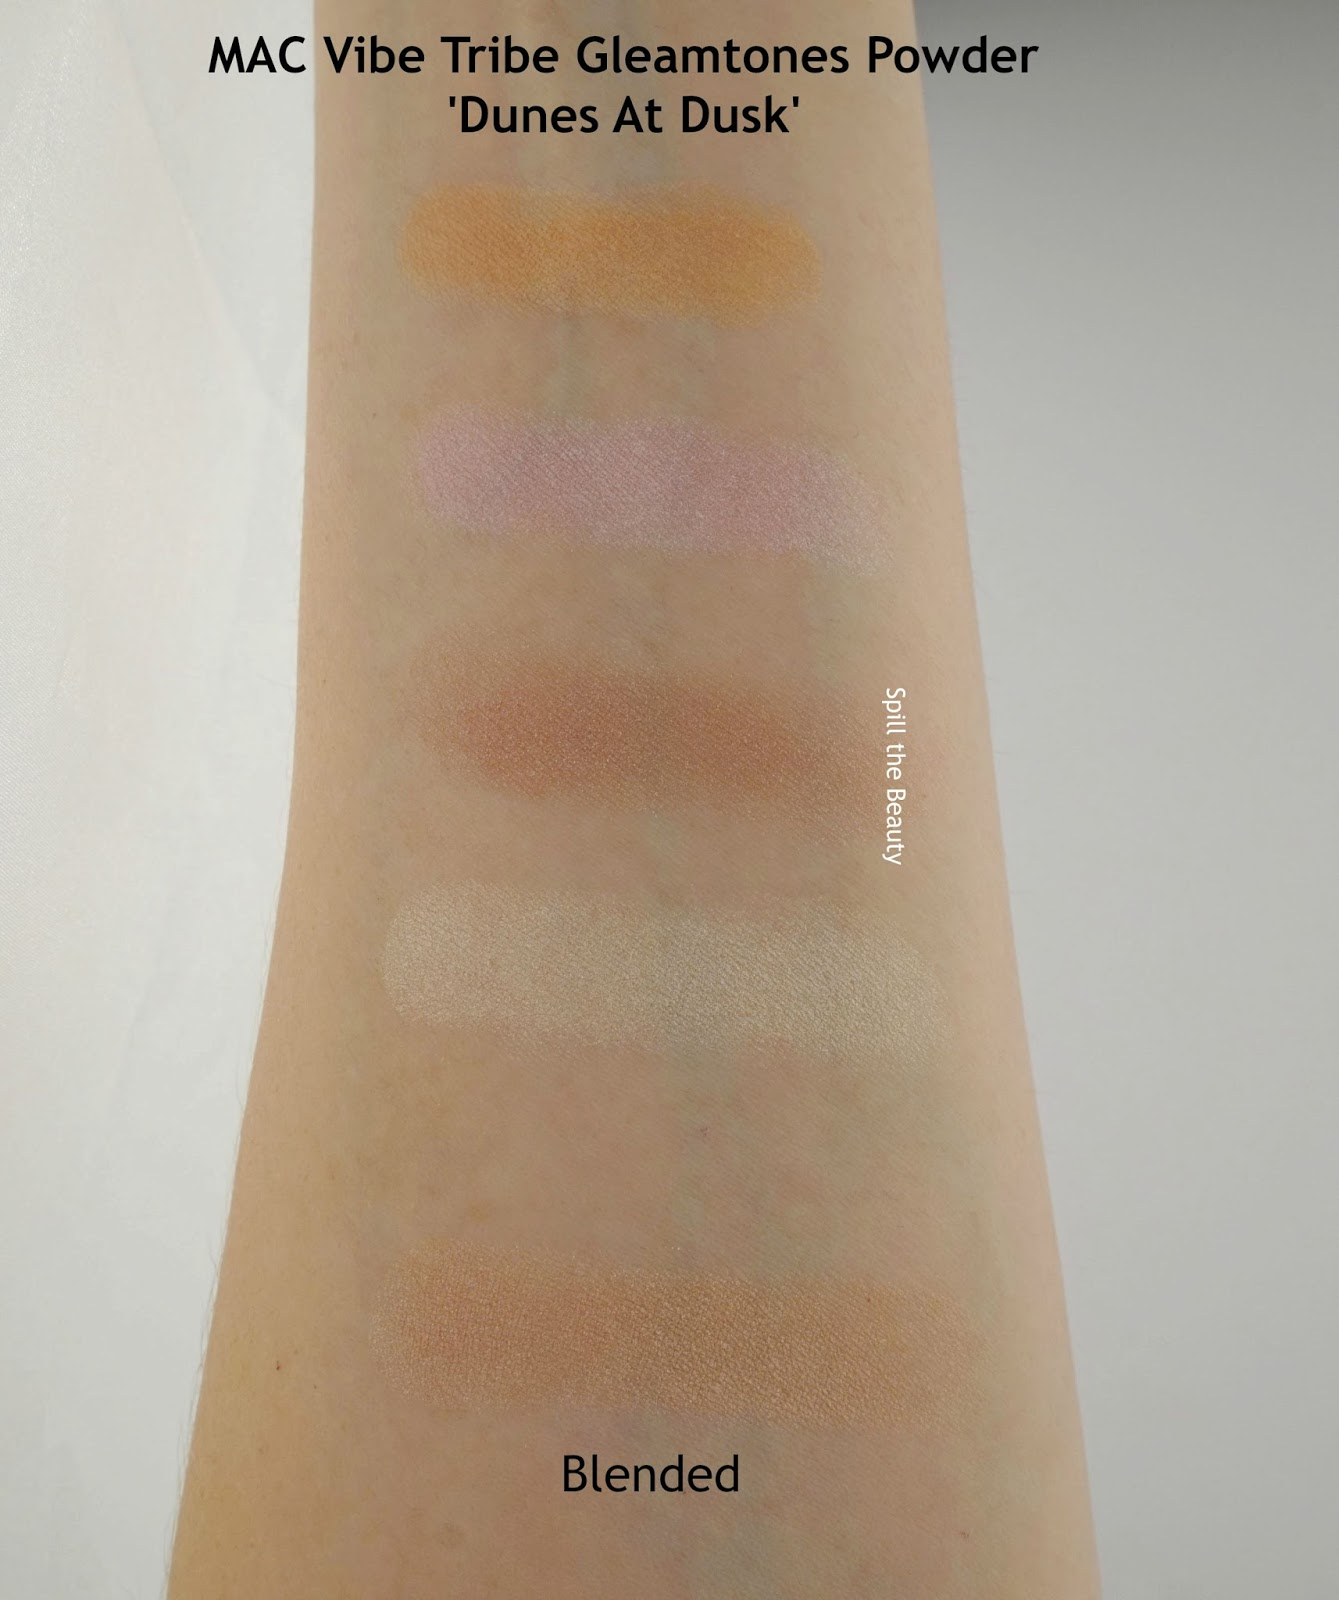 MAC VIbe Tribe Gleamtones Powder Dunes At Dusk Review Swatches arm swatch